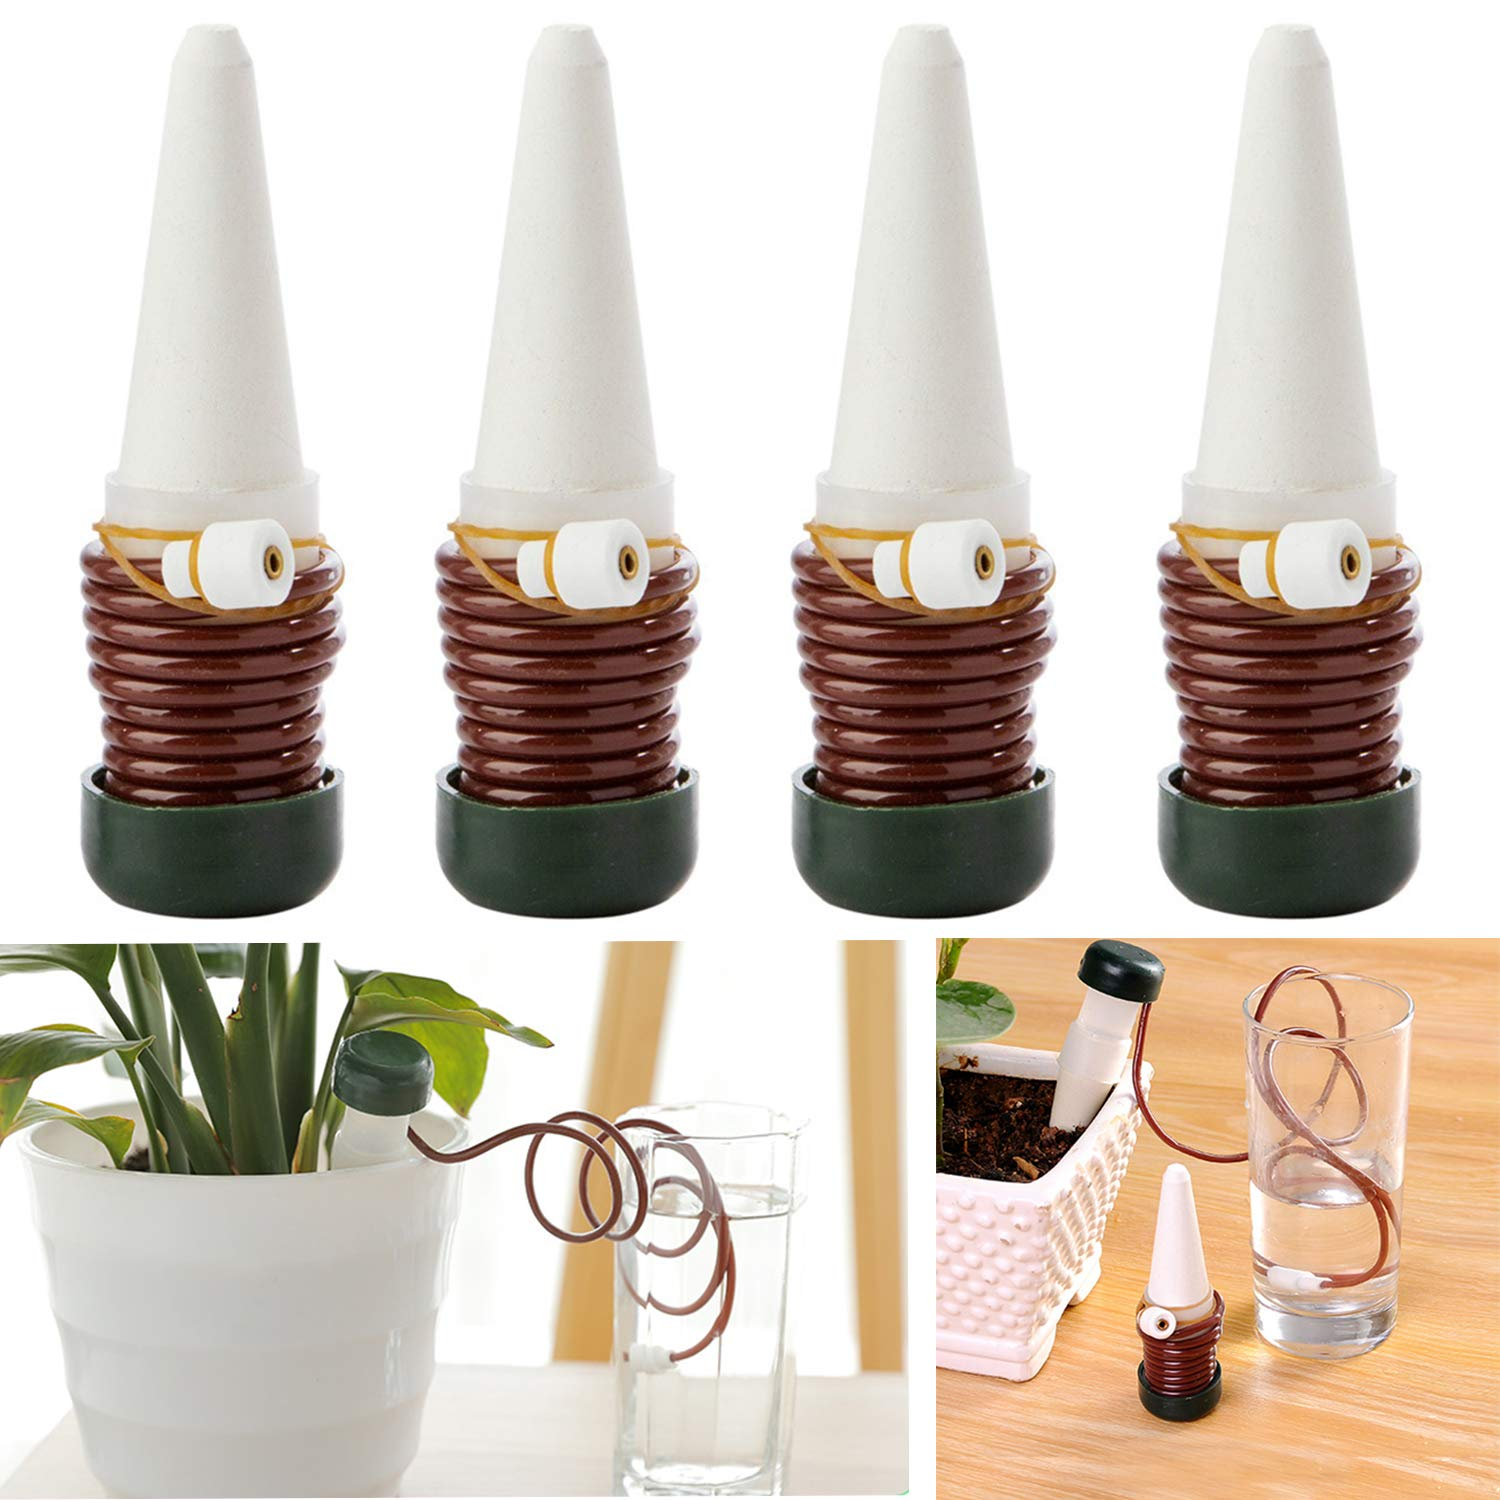 225 & 4 PCS Watering Stakes Vacation Plant Waterer Self Automatic Drip Irrigation Watering System Devices for Indoor or Outdoor Houseplants